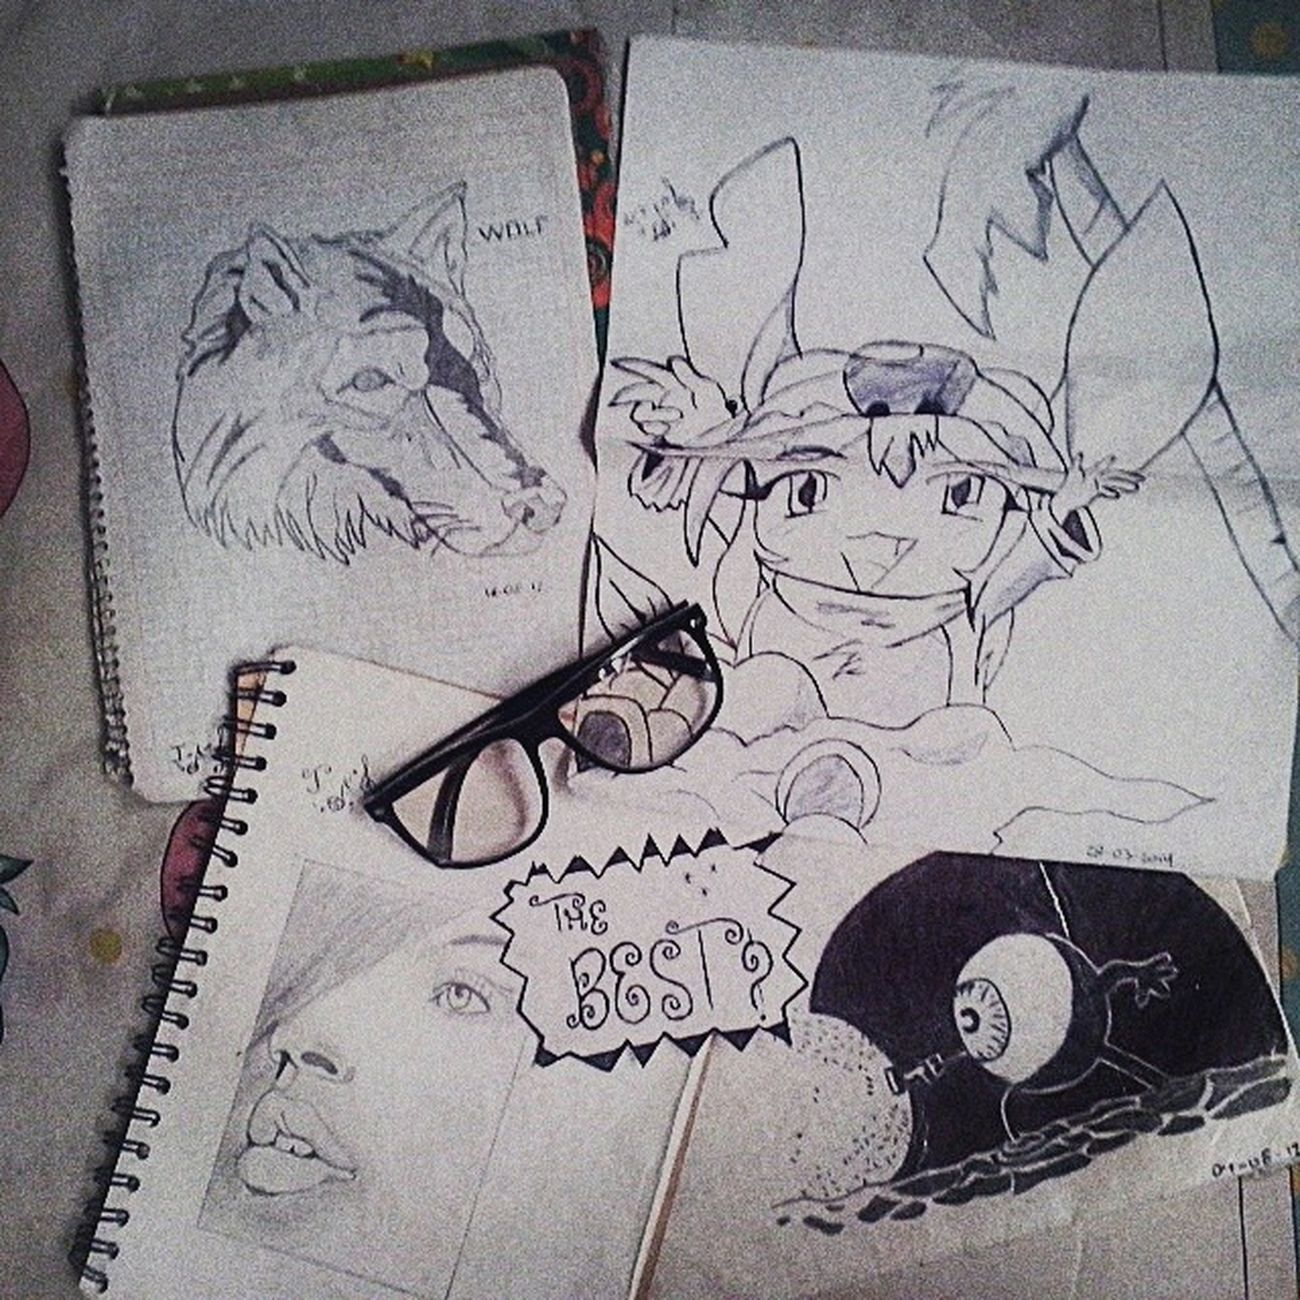 La Mente Detras Del Lapiz Mis Dibujos Draw ArtWork Art, Drawing, Creativity Drawingtime Dibujo A Lapiz Drawing Arte Artistic